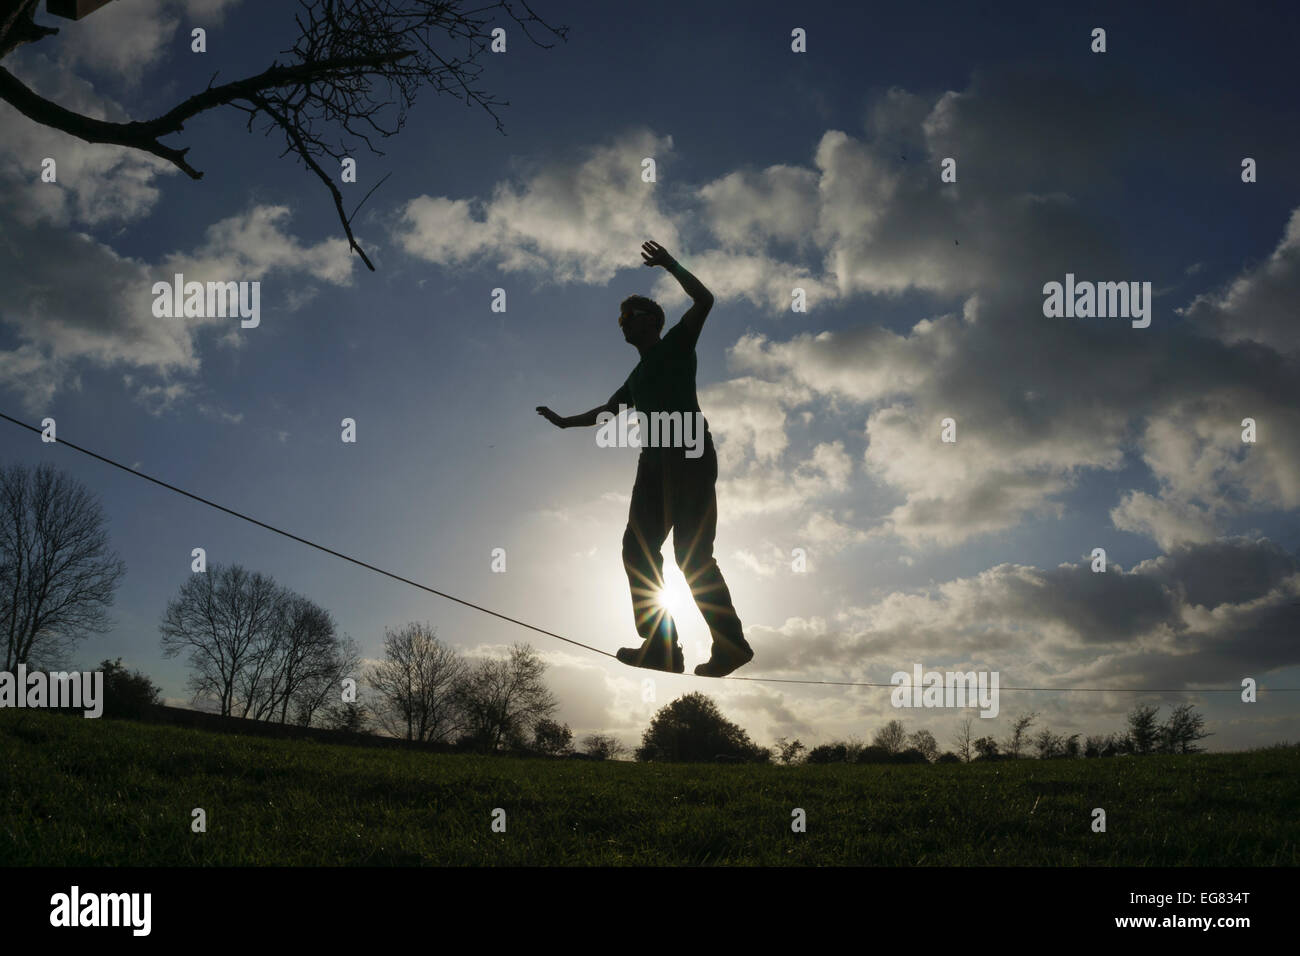 Man walking and balancing on a slackline backlit by the sun. England UK - Stock Image